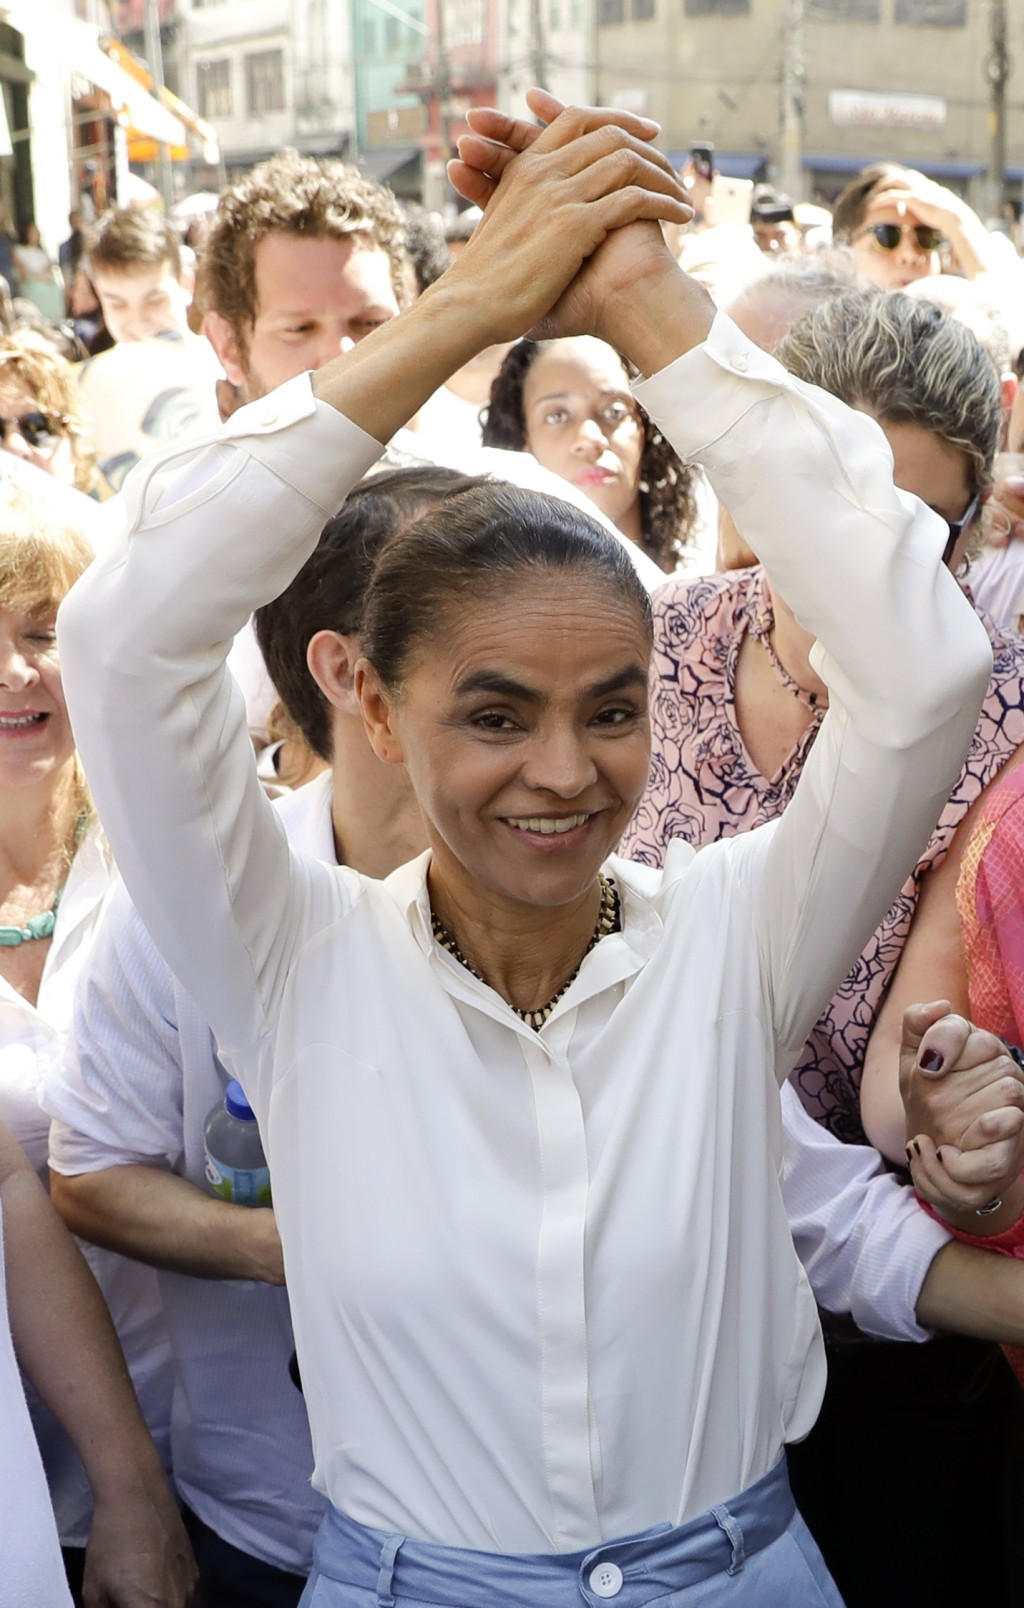 FILE - In this Sept. 8, 2018 file photo, Brazilian presidential candidate Marina Silva strikes a winner's pose as she campaigns in downtown Sao Paulo,